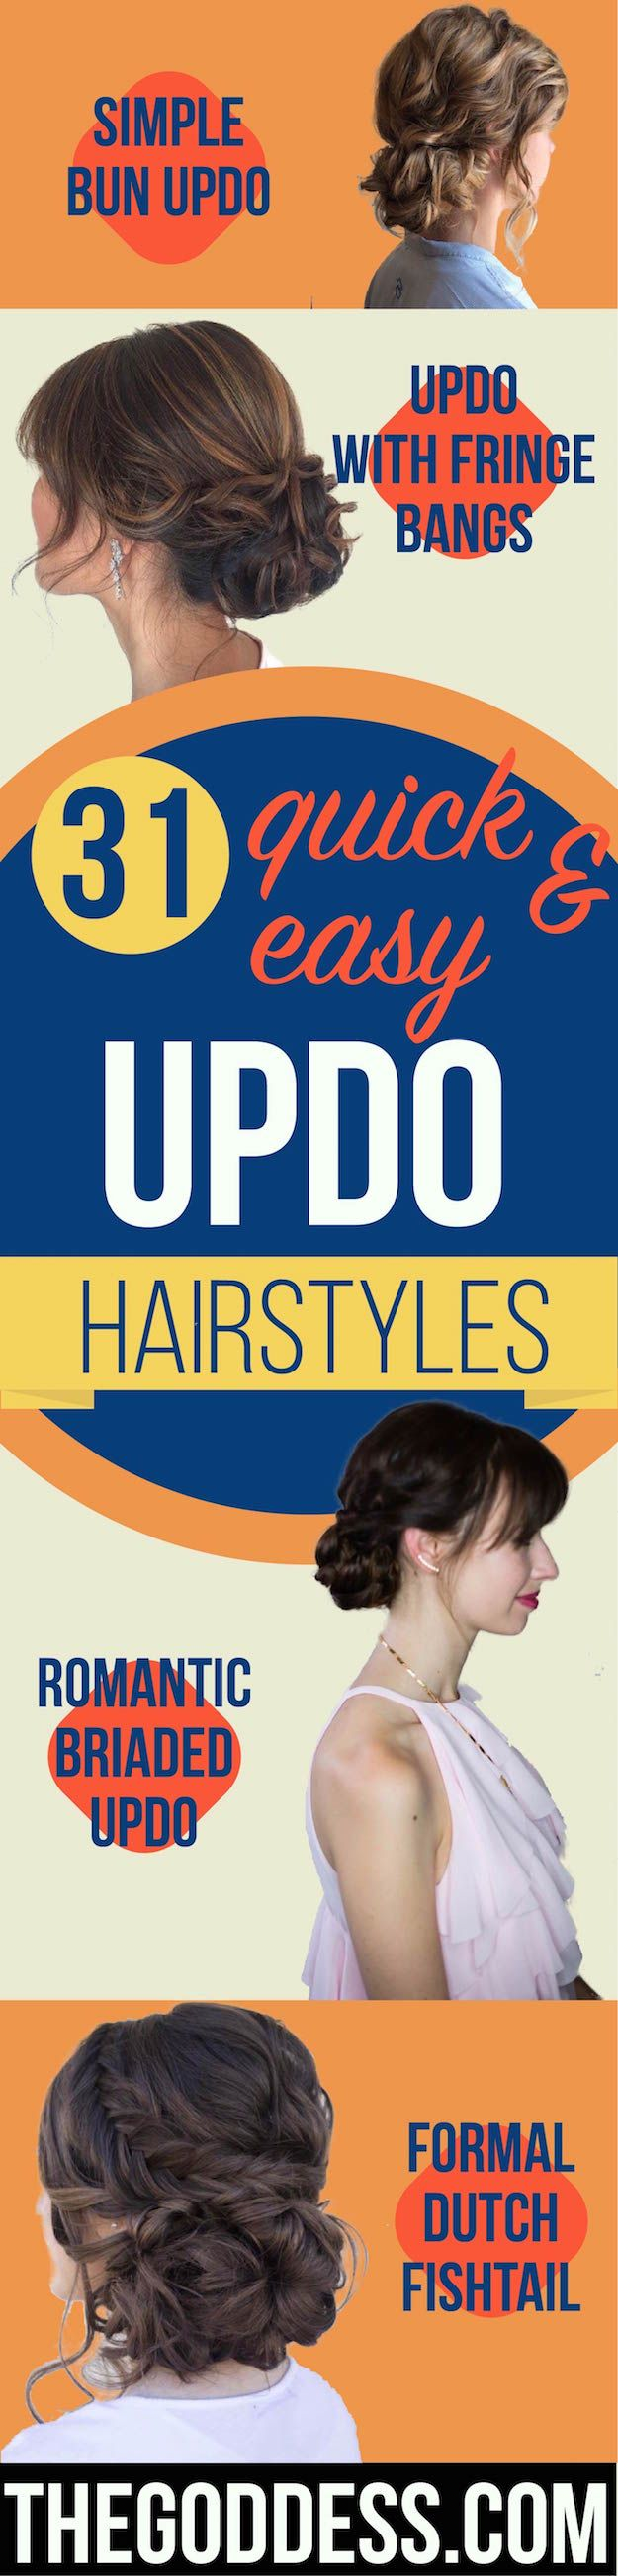 Quick and Easy Updo Hairstyles - Hair Hacks And Popular Haircuts For The Lazy Gi...